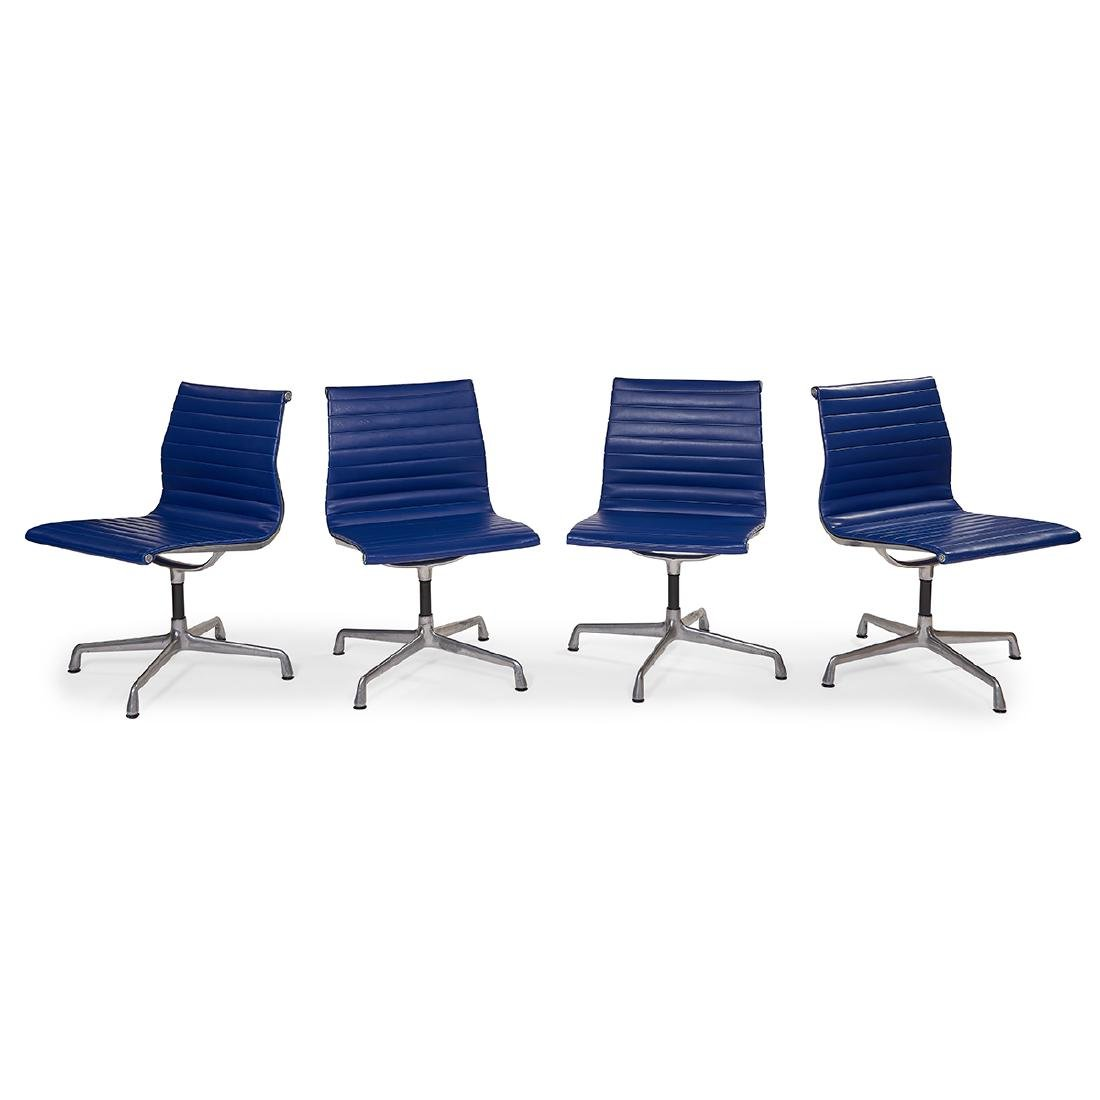 Eames Herman Miller Alum Group chairs, four